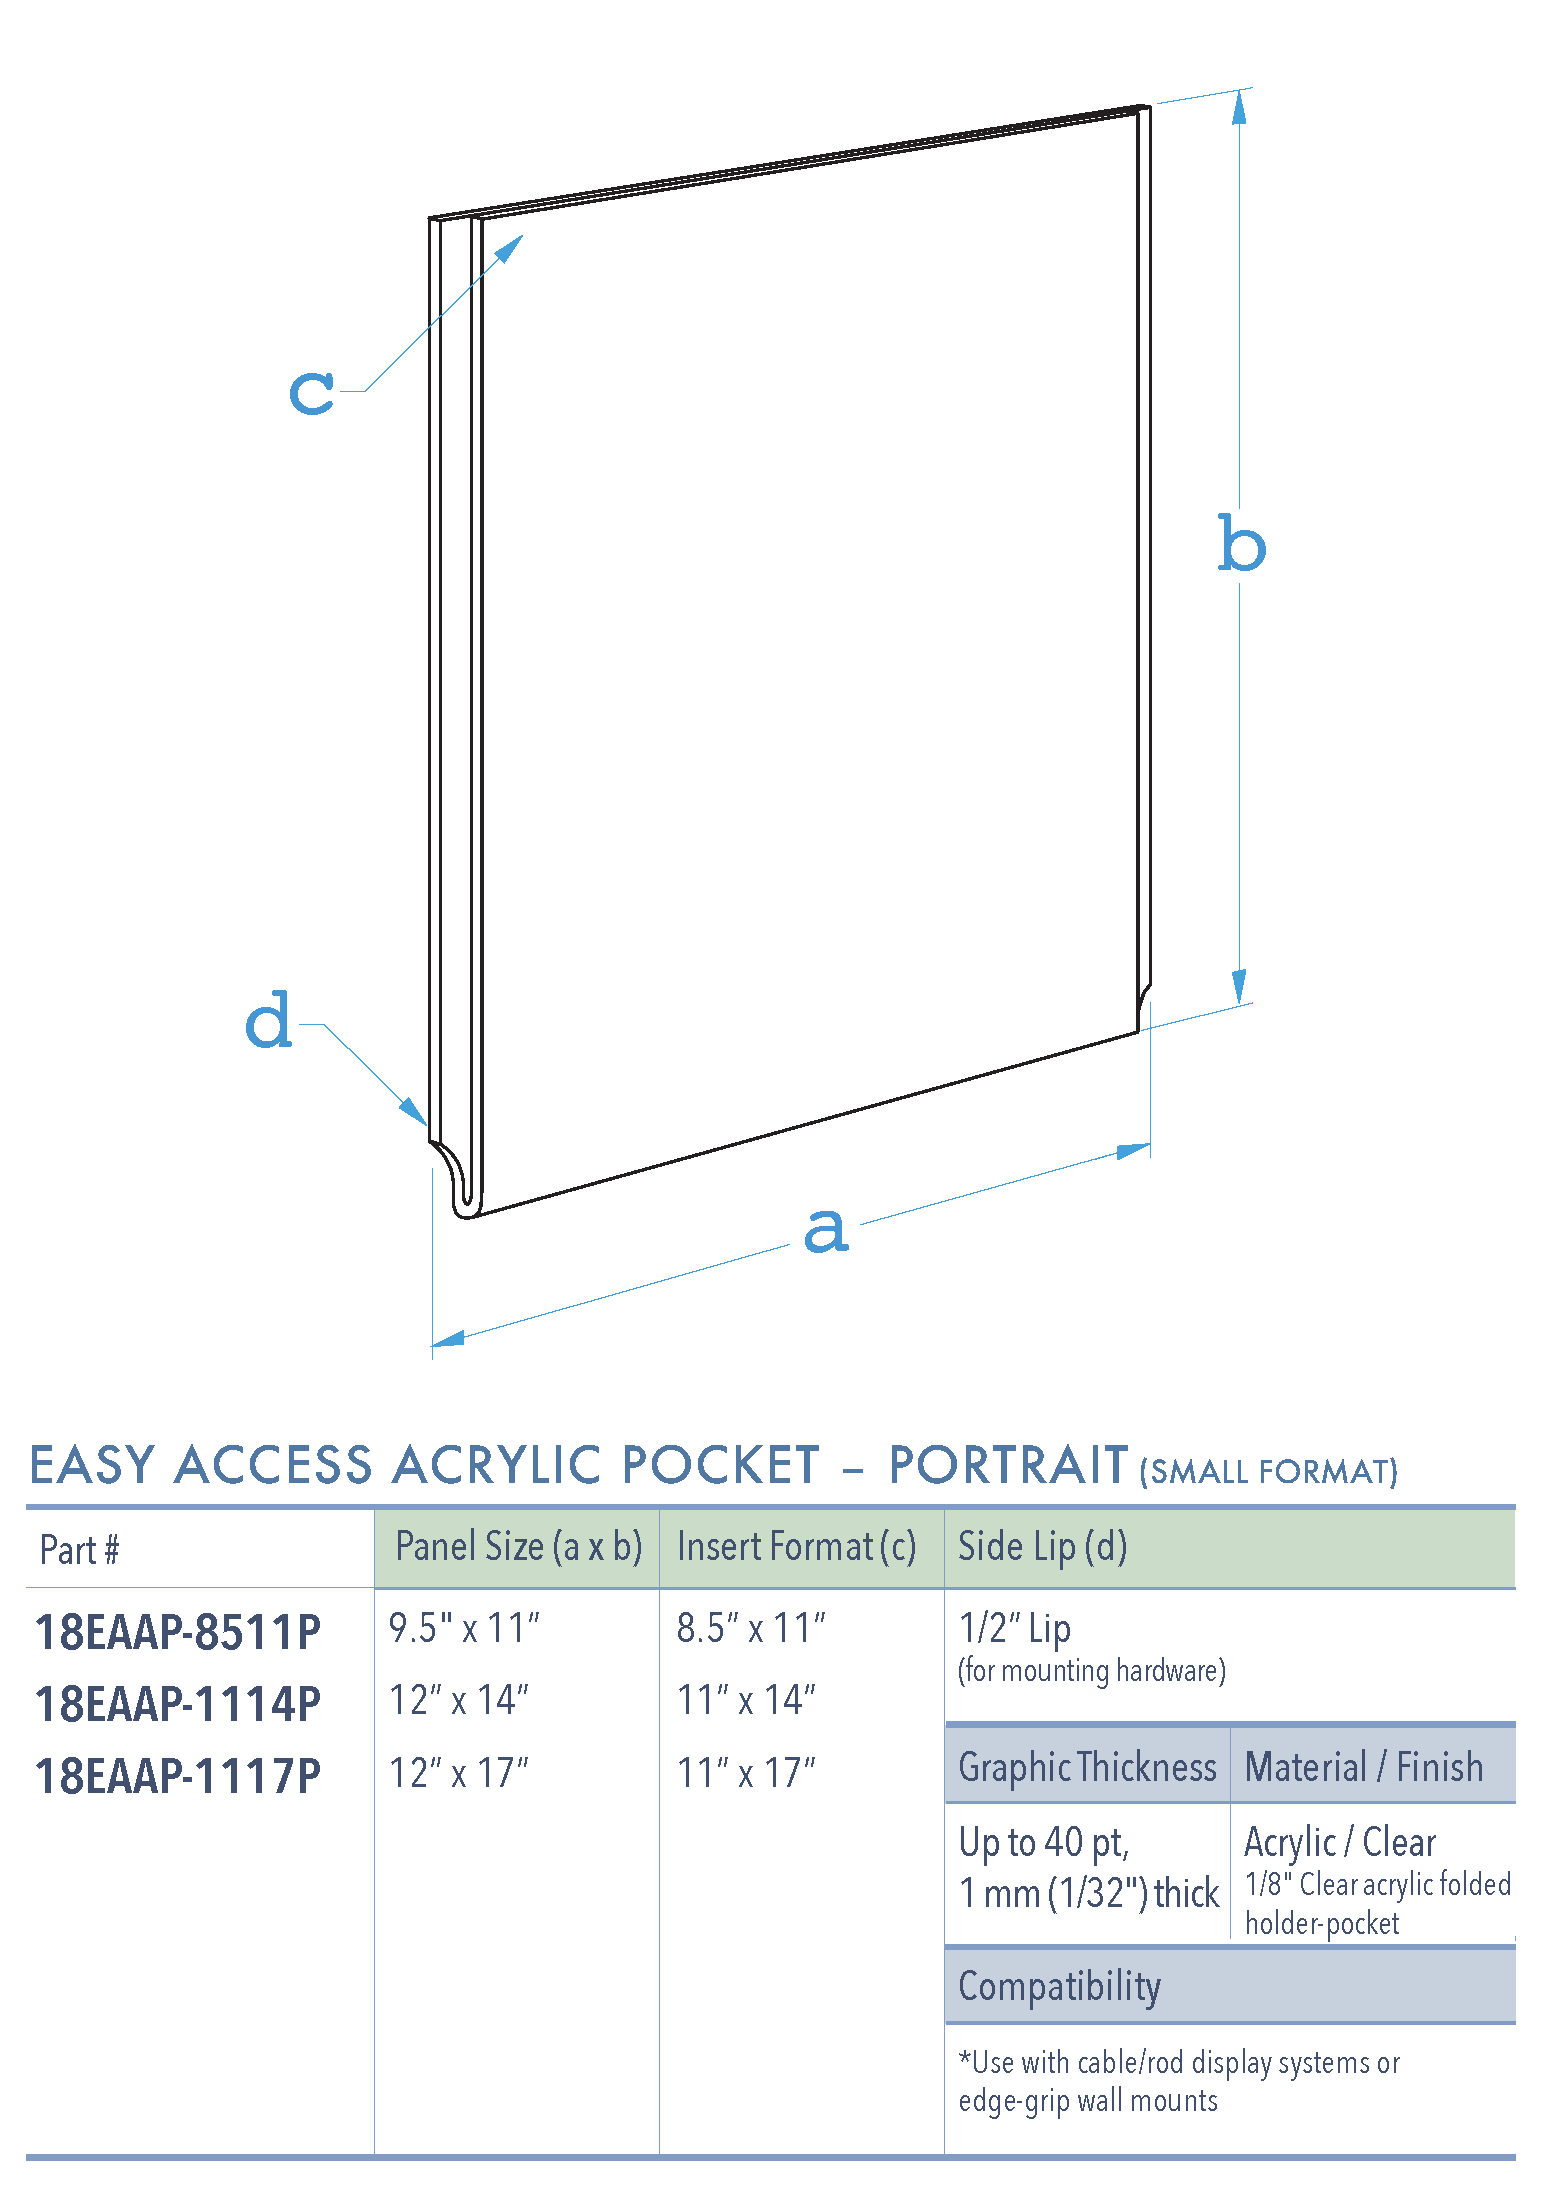 Specifications for 18EAAP-INSERT-PORTRAIT-SM